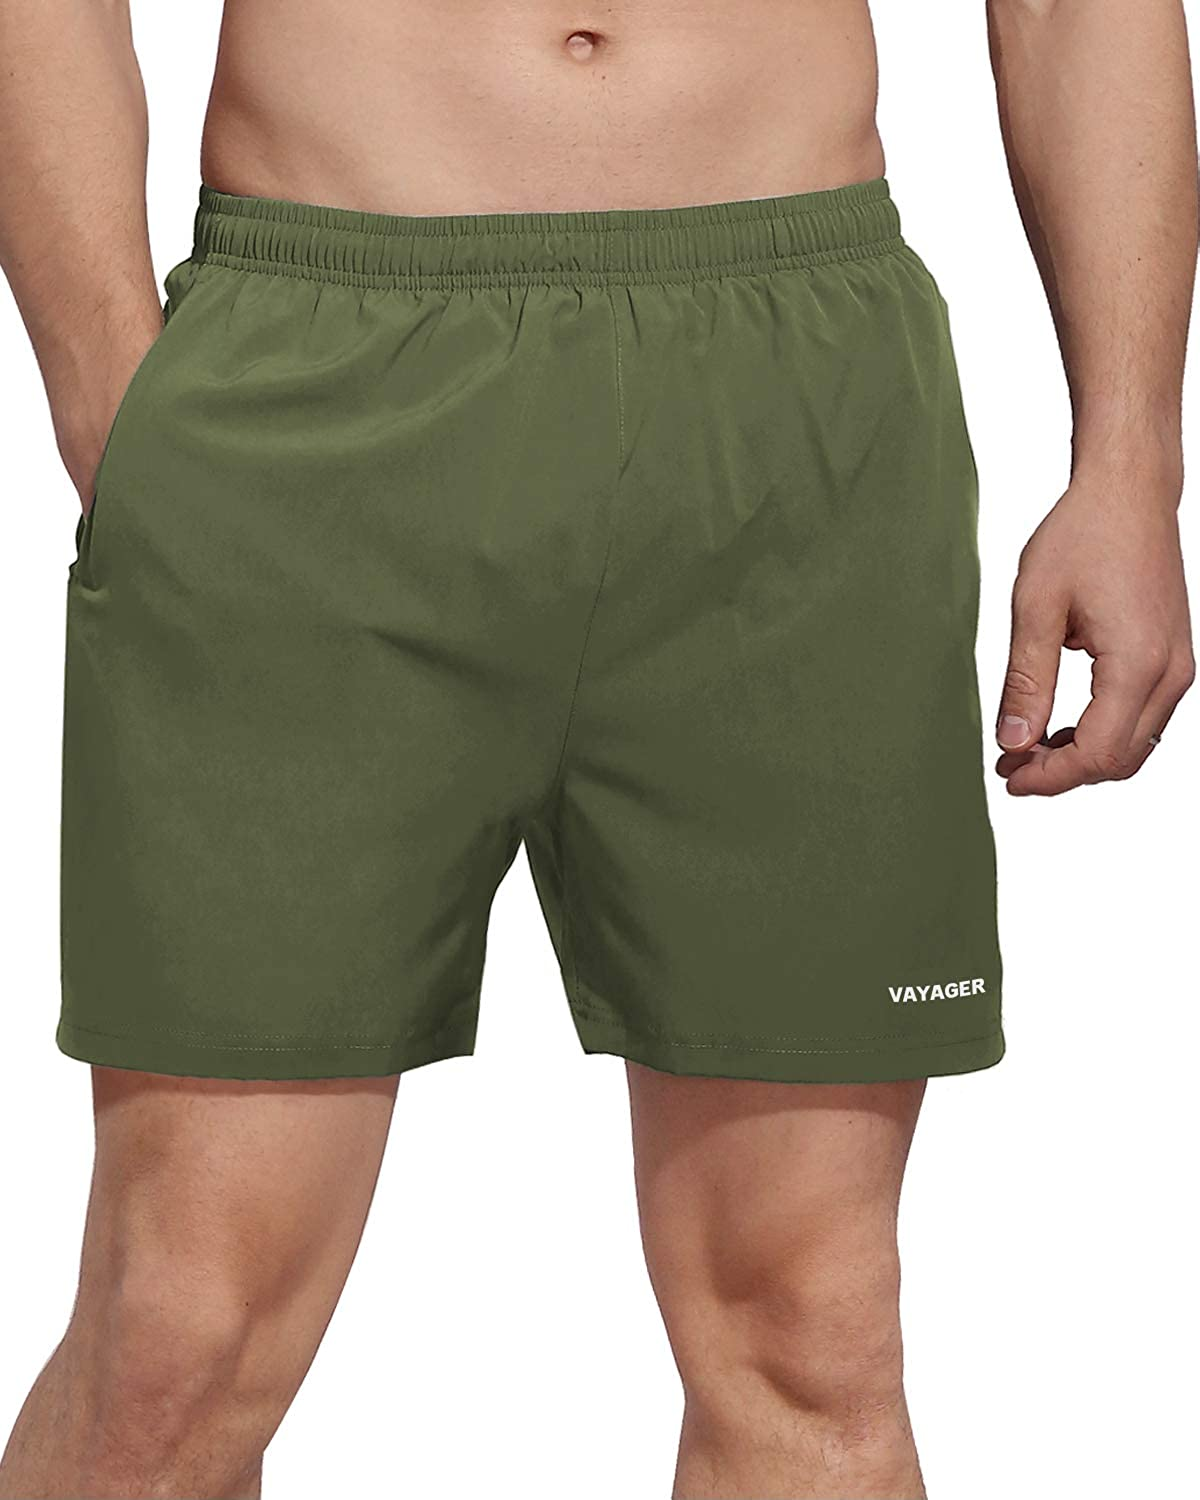 Quick Dry Lightweight Athletic Running Shorts with Liner Zipper Pockets GymBrave Mens 5 Inches Workout Shorts